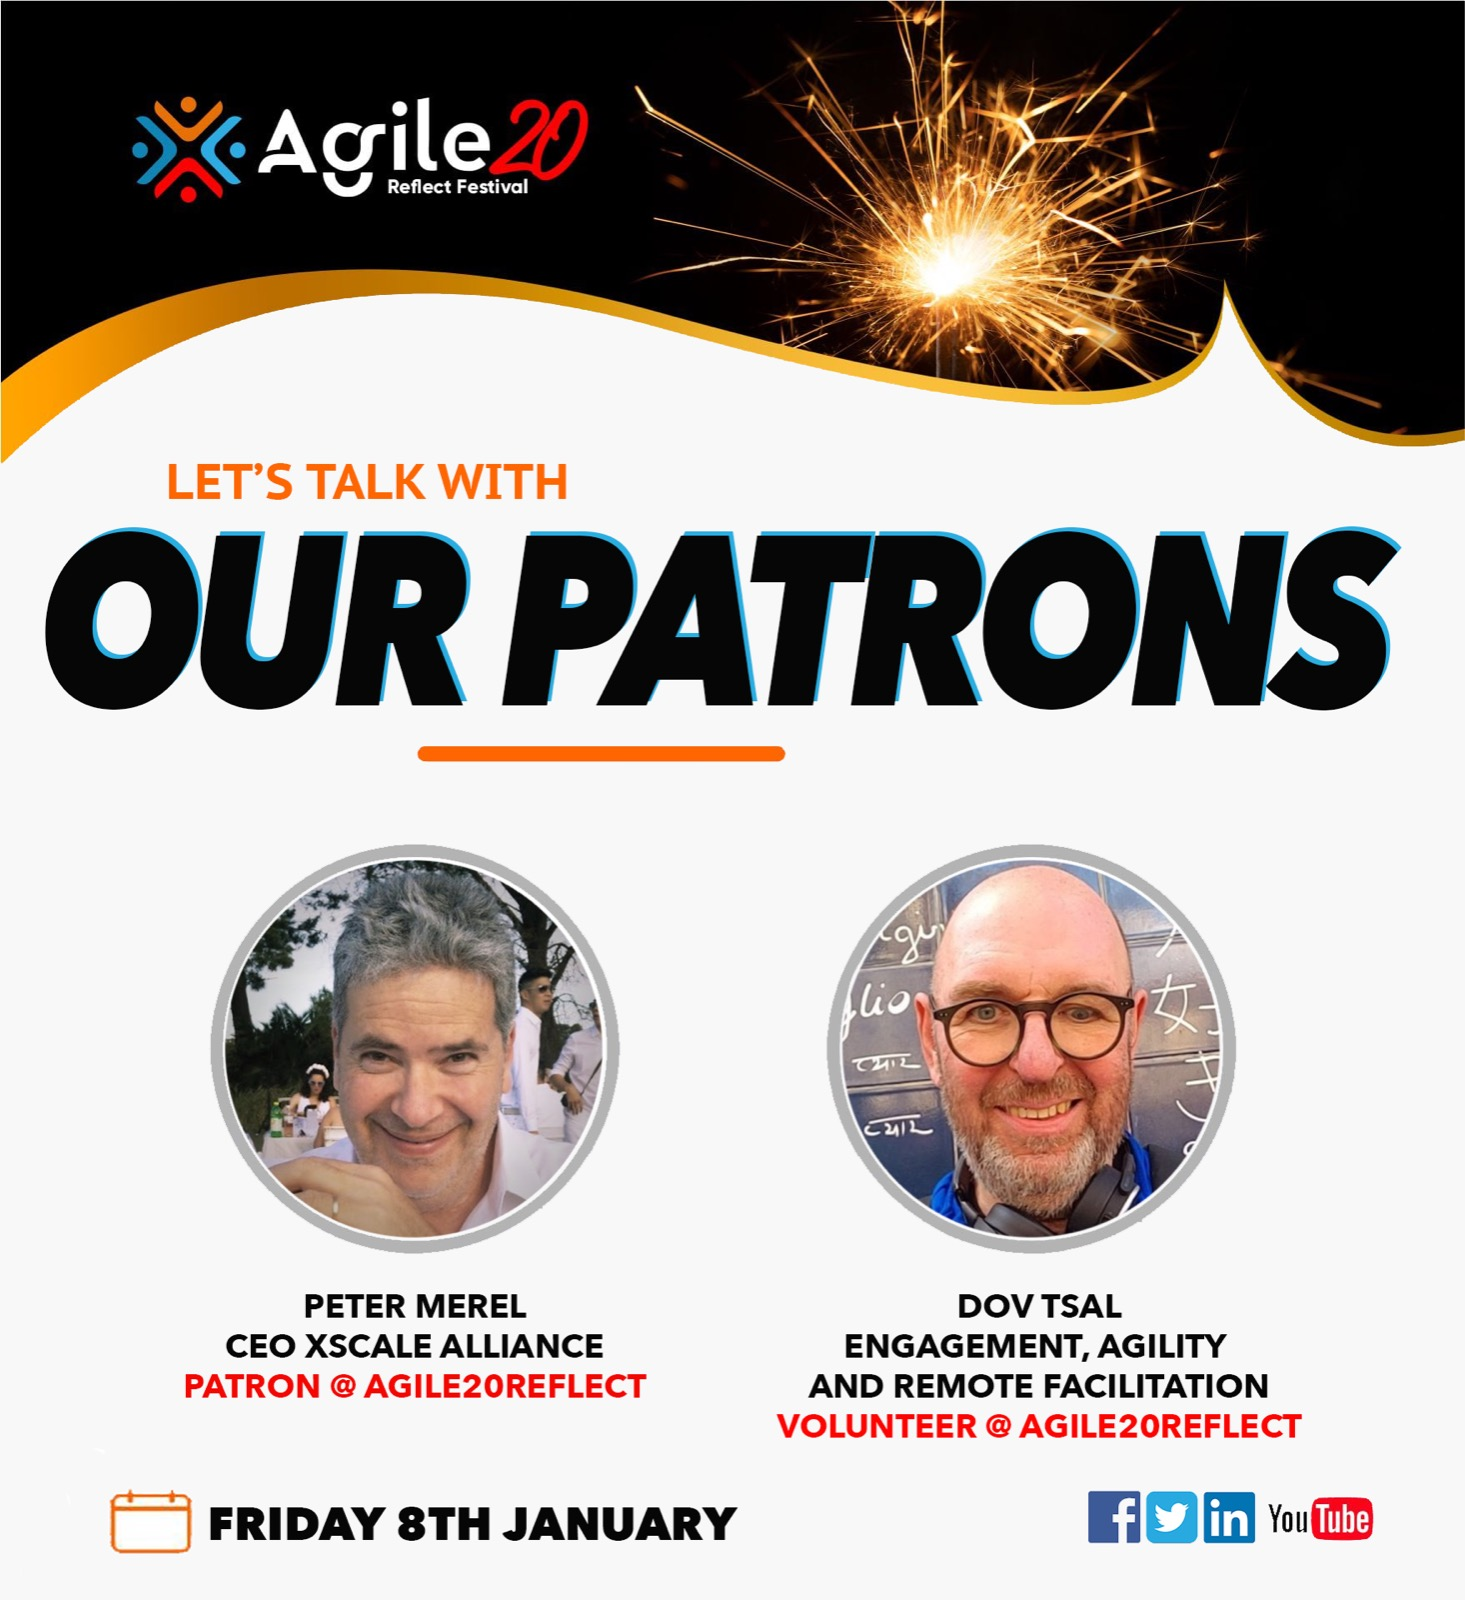 Agile20Reflect Festival Patron Peter Merel Interview